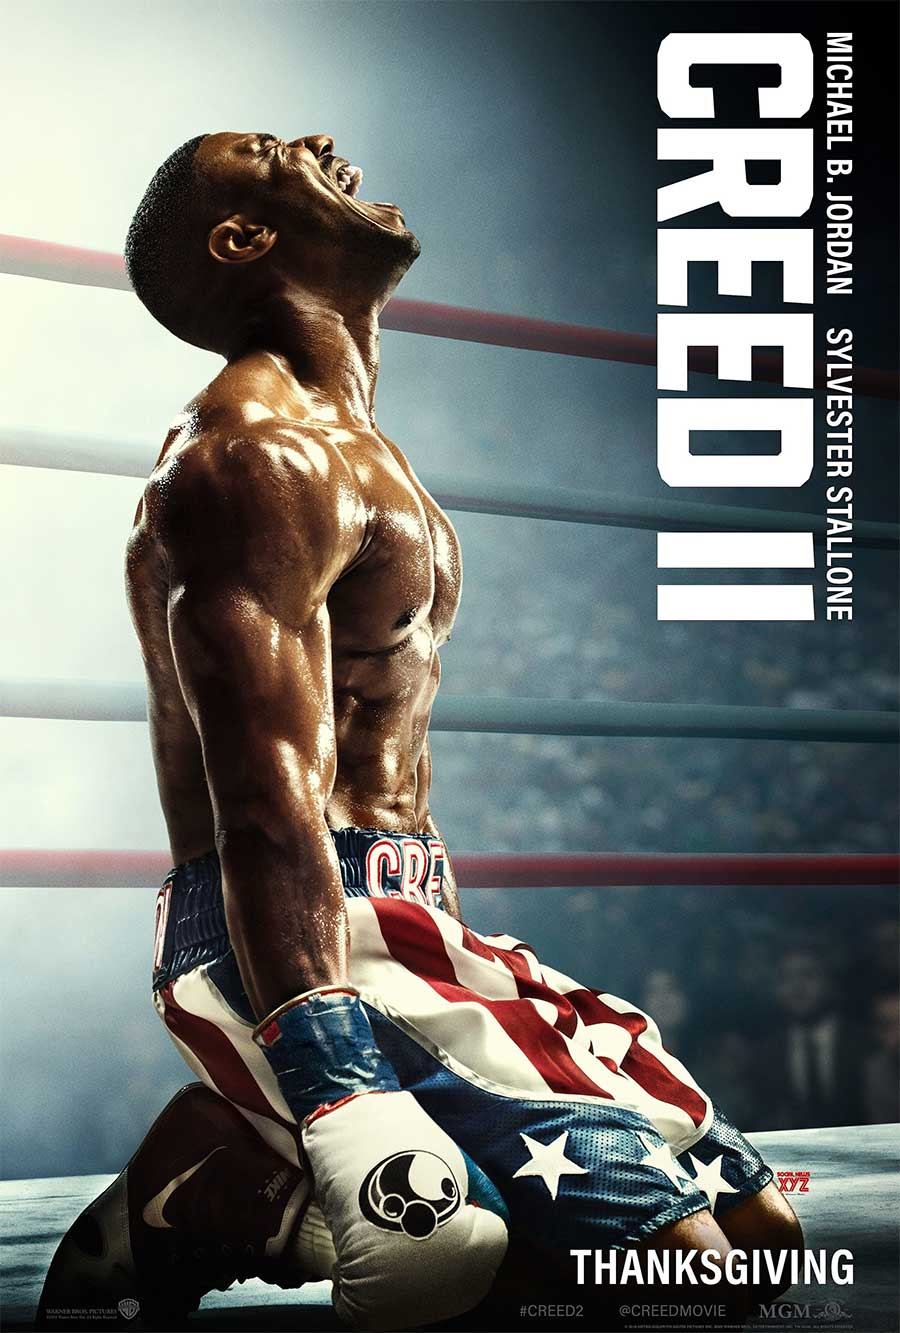 Poster for Creed II